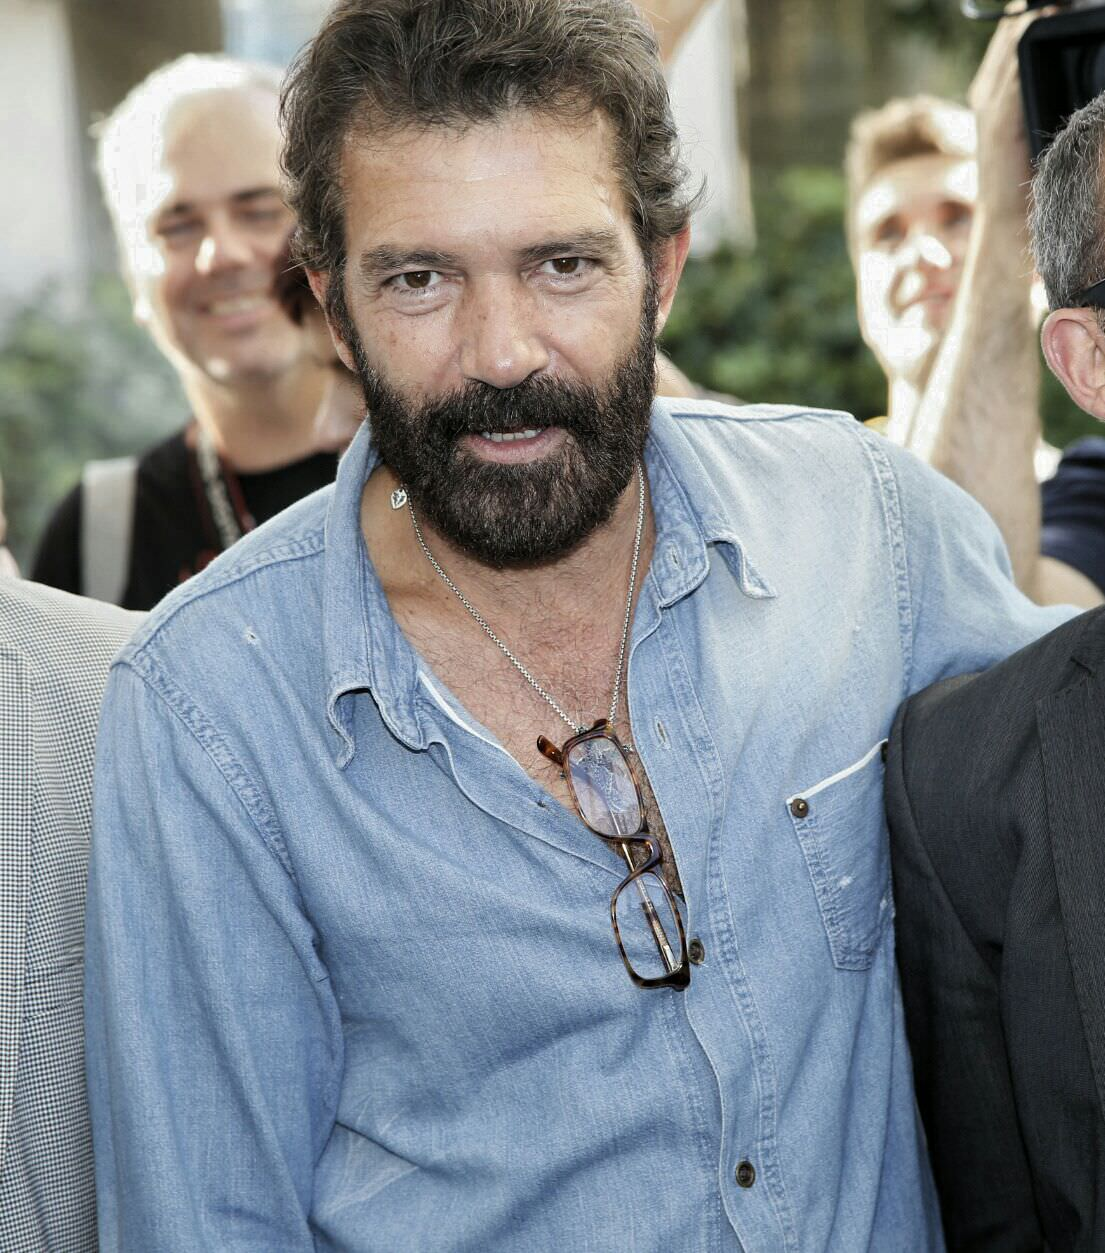 Antonio Banderas en Sitges 2014 / Photo by Nicolas Afonso